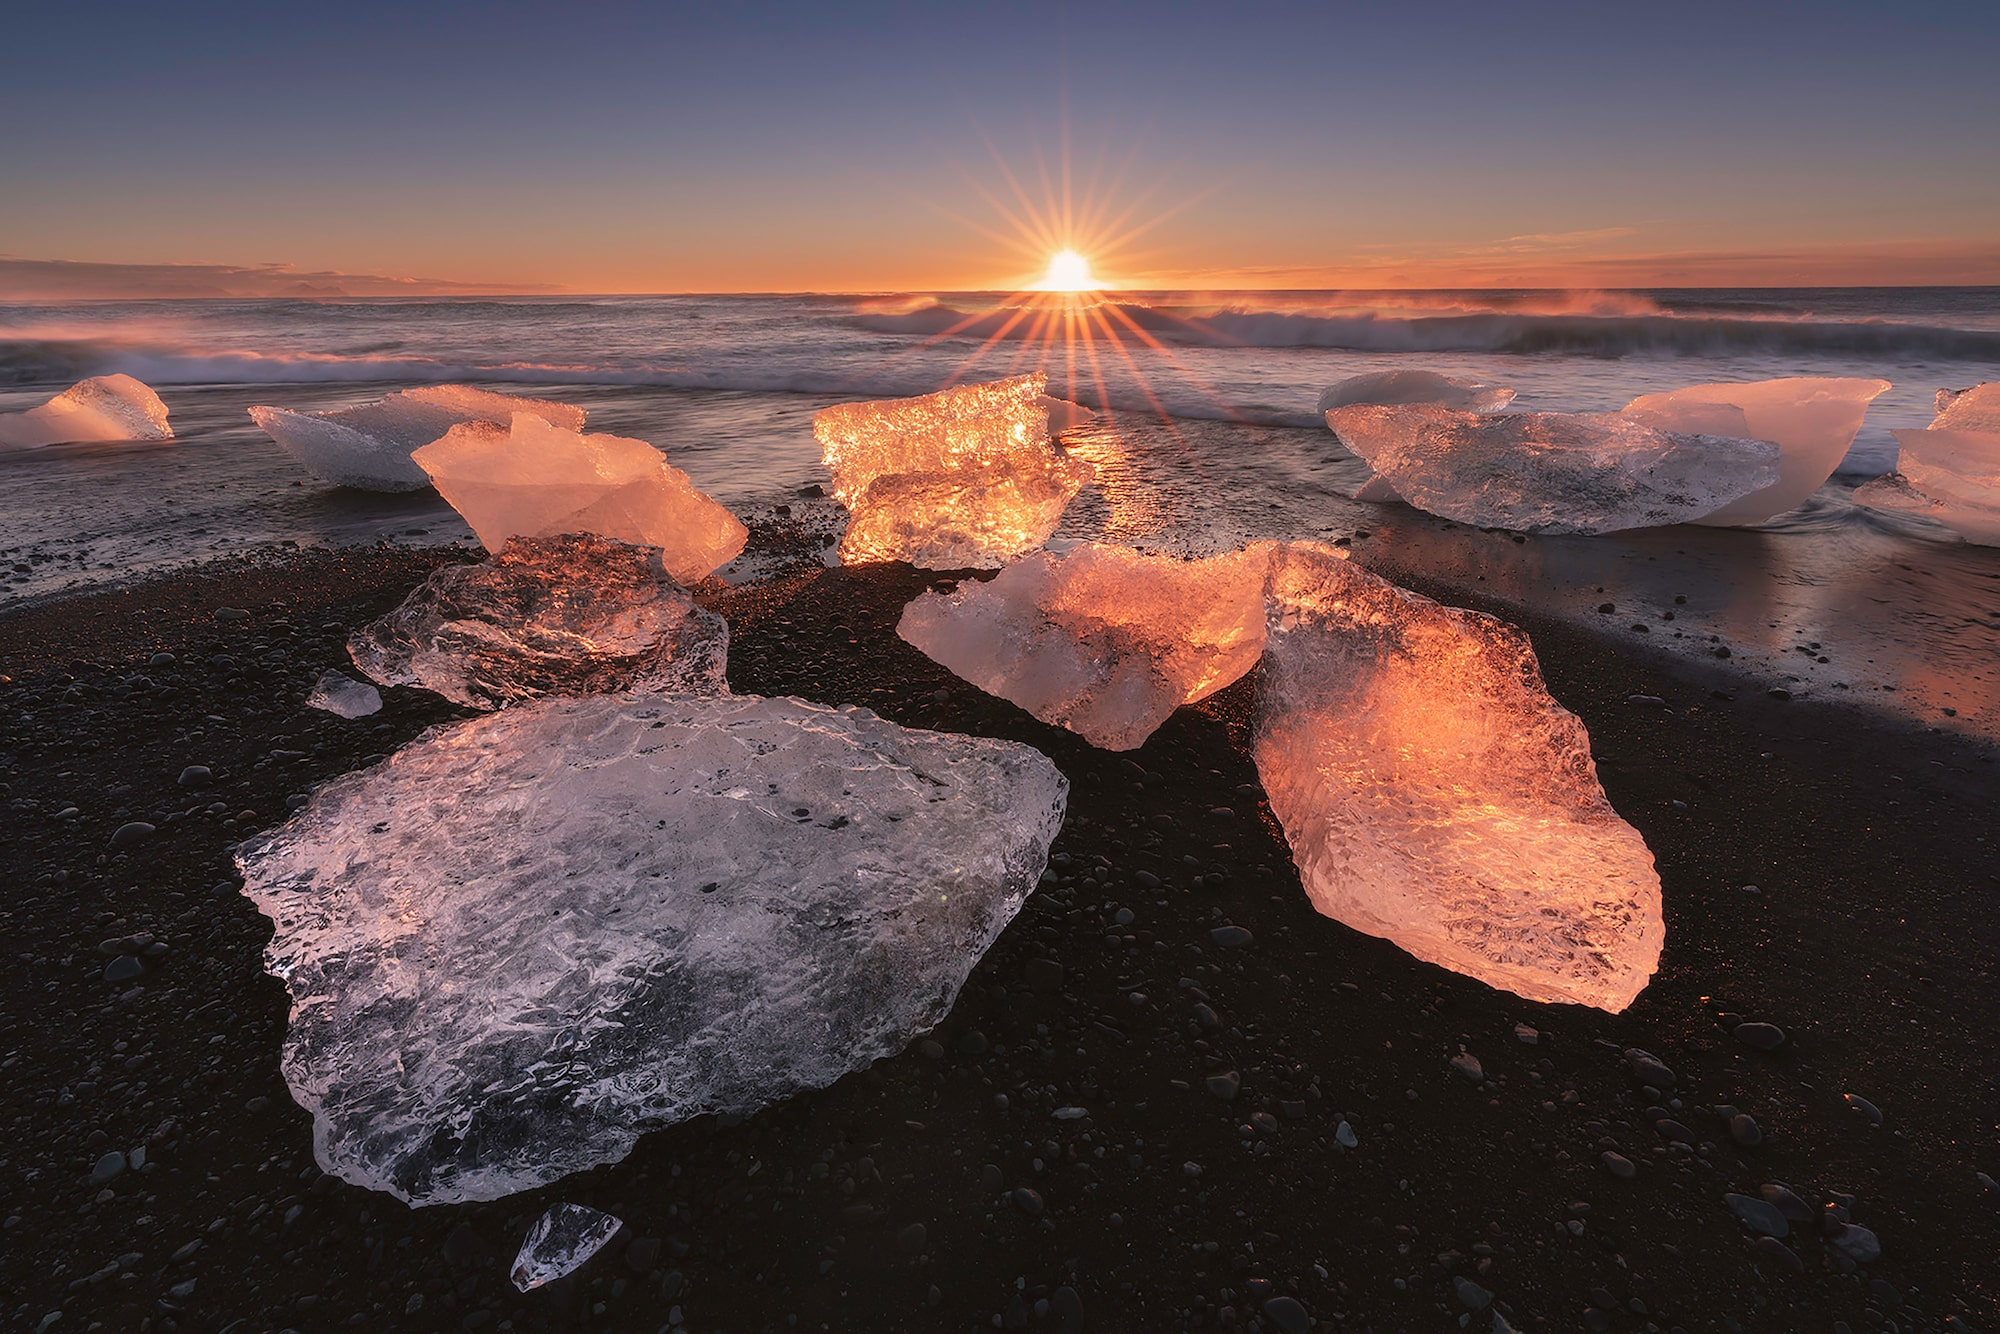 iurie belegurschi sony alpha 7RIII the sun rises on the horizon at the shore with large ice blocks illuminated in the foreground